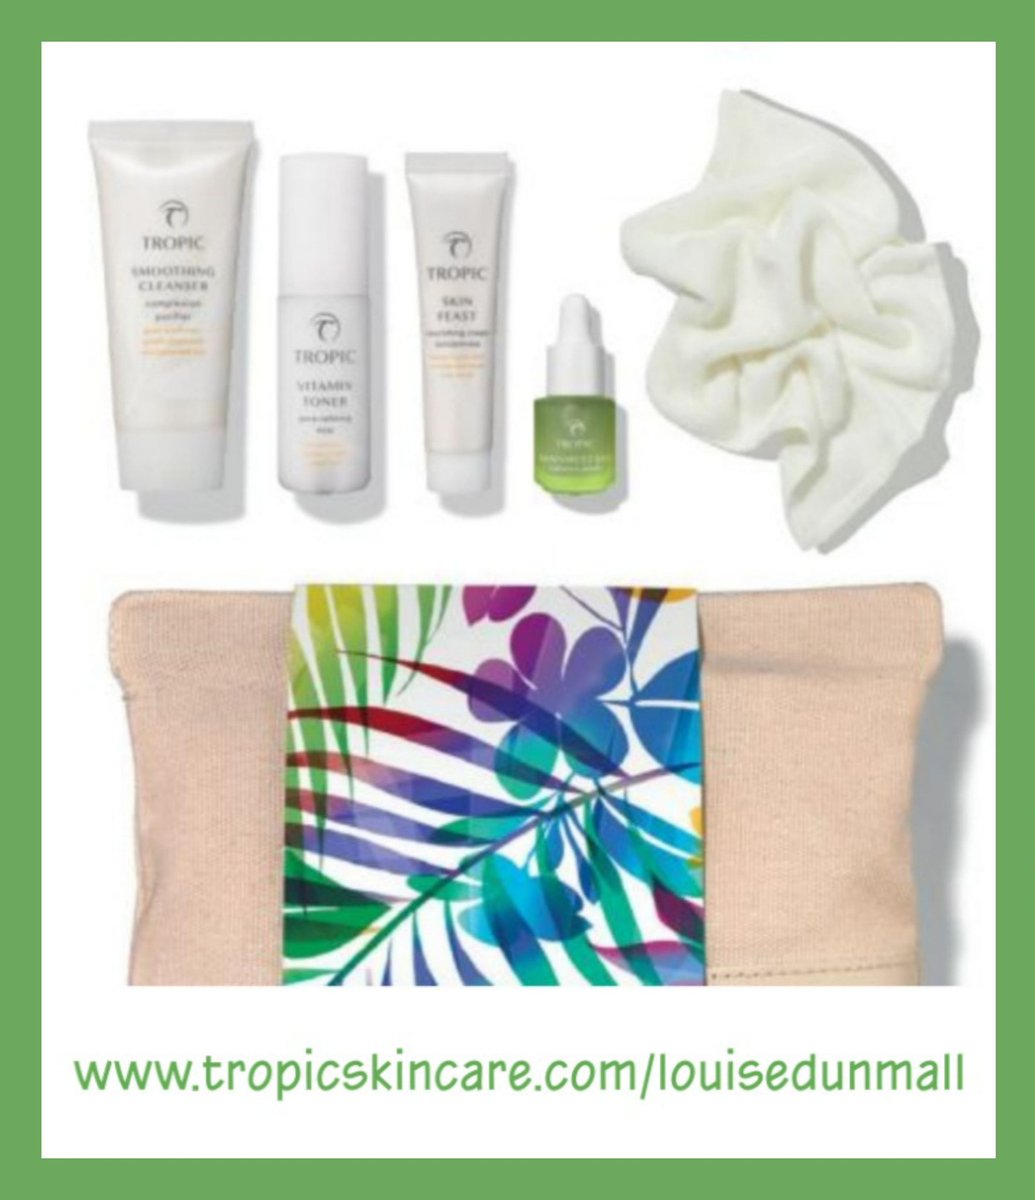 Are you still going out to buy your regular skincare brands?Why don't you give Tropic a try? Vegan, cruelty-free, naturally derived & made here in the UK 🇬🇧 #shopsmall #shoplocal  SHOP ONLINE NOW AT...